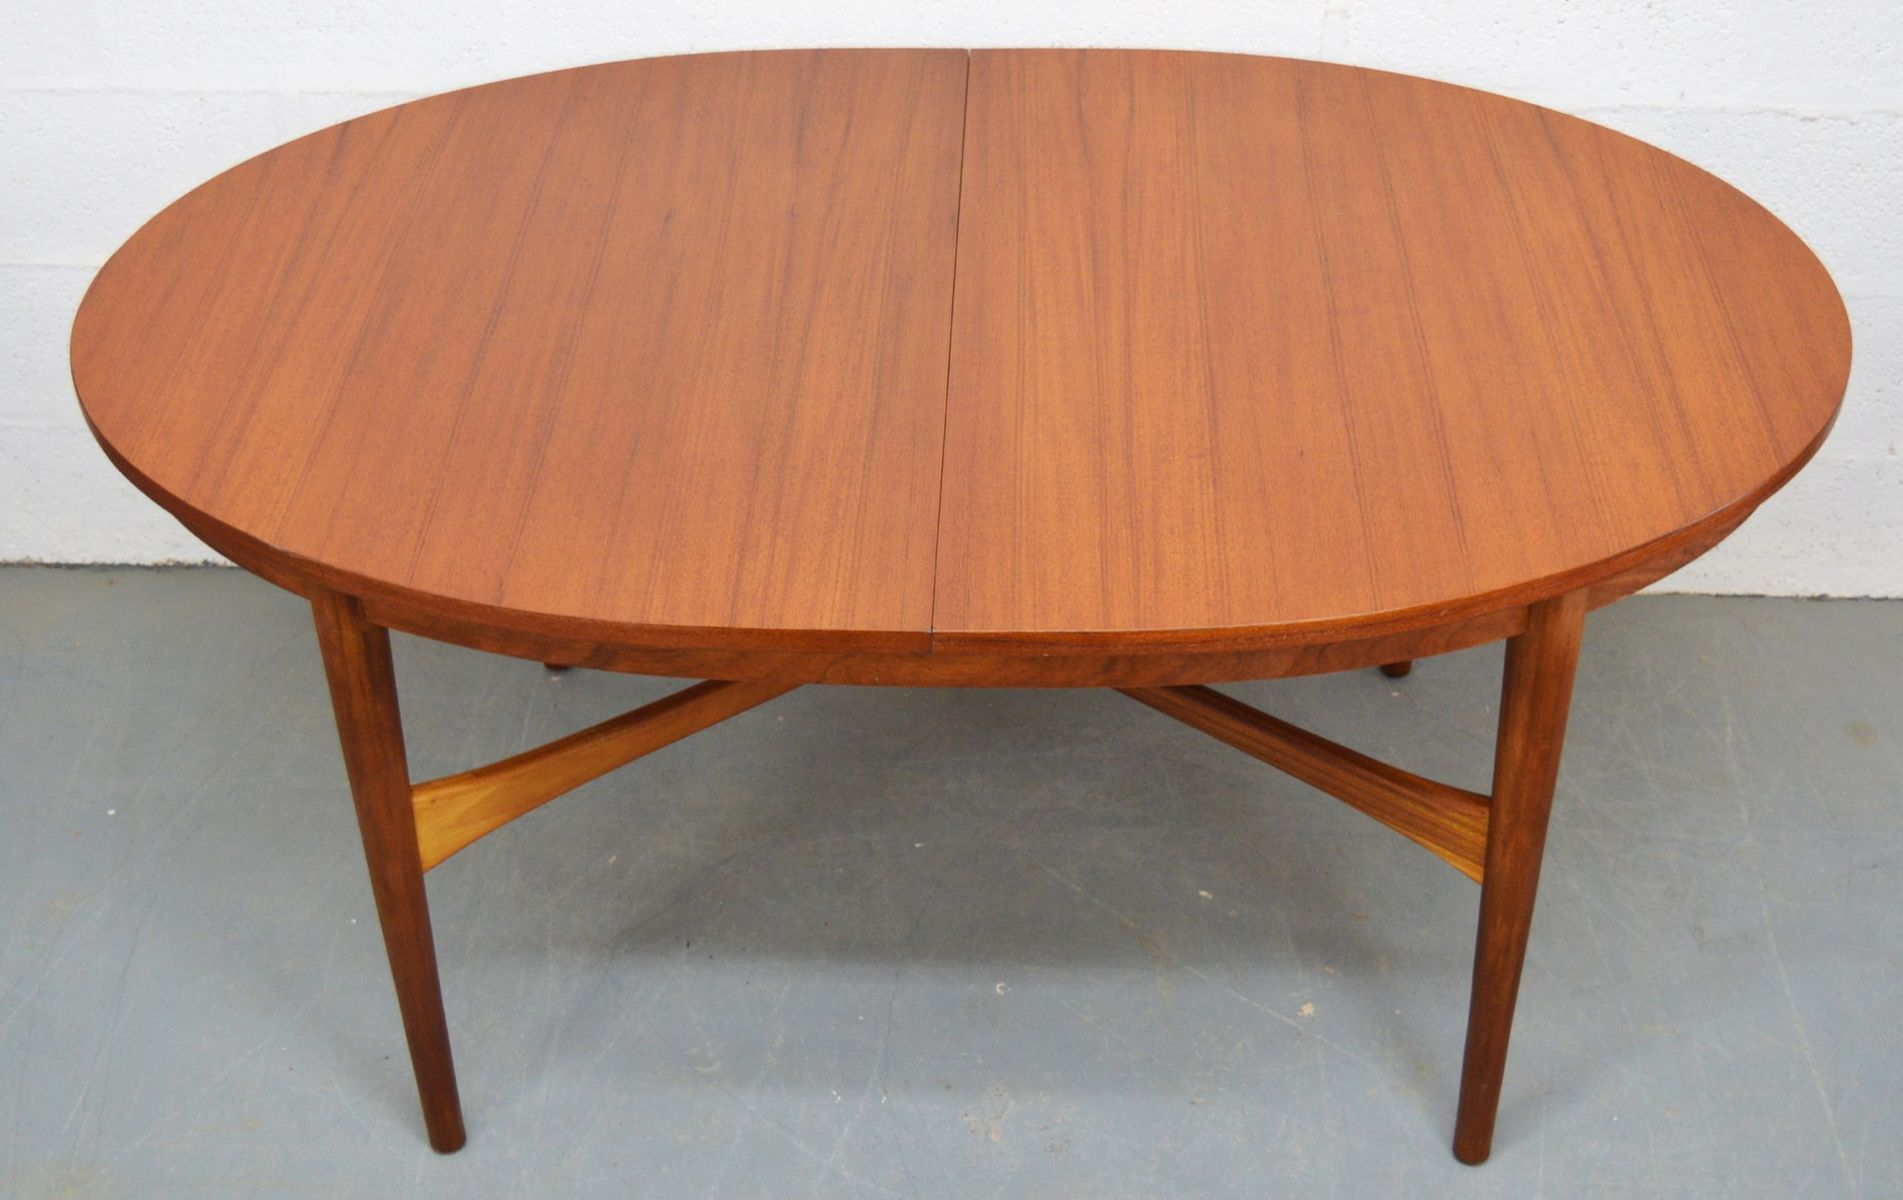 Mid Century Teak Extendable Oval Dining Table from  : mid century teak extendable oval dining table from beithcraft 1 from www.pamono.com.au size 1902 x 1200 jpeg 141kB